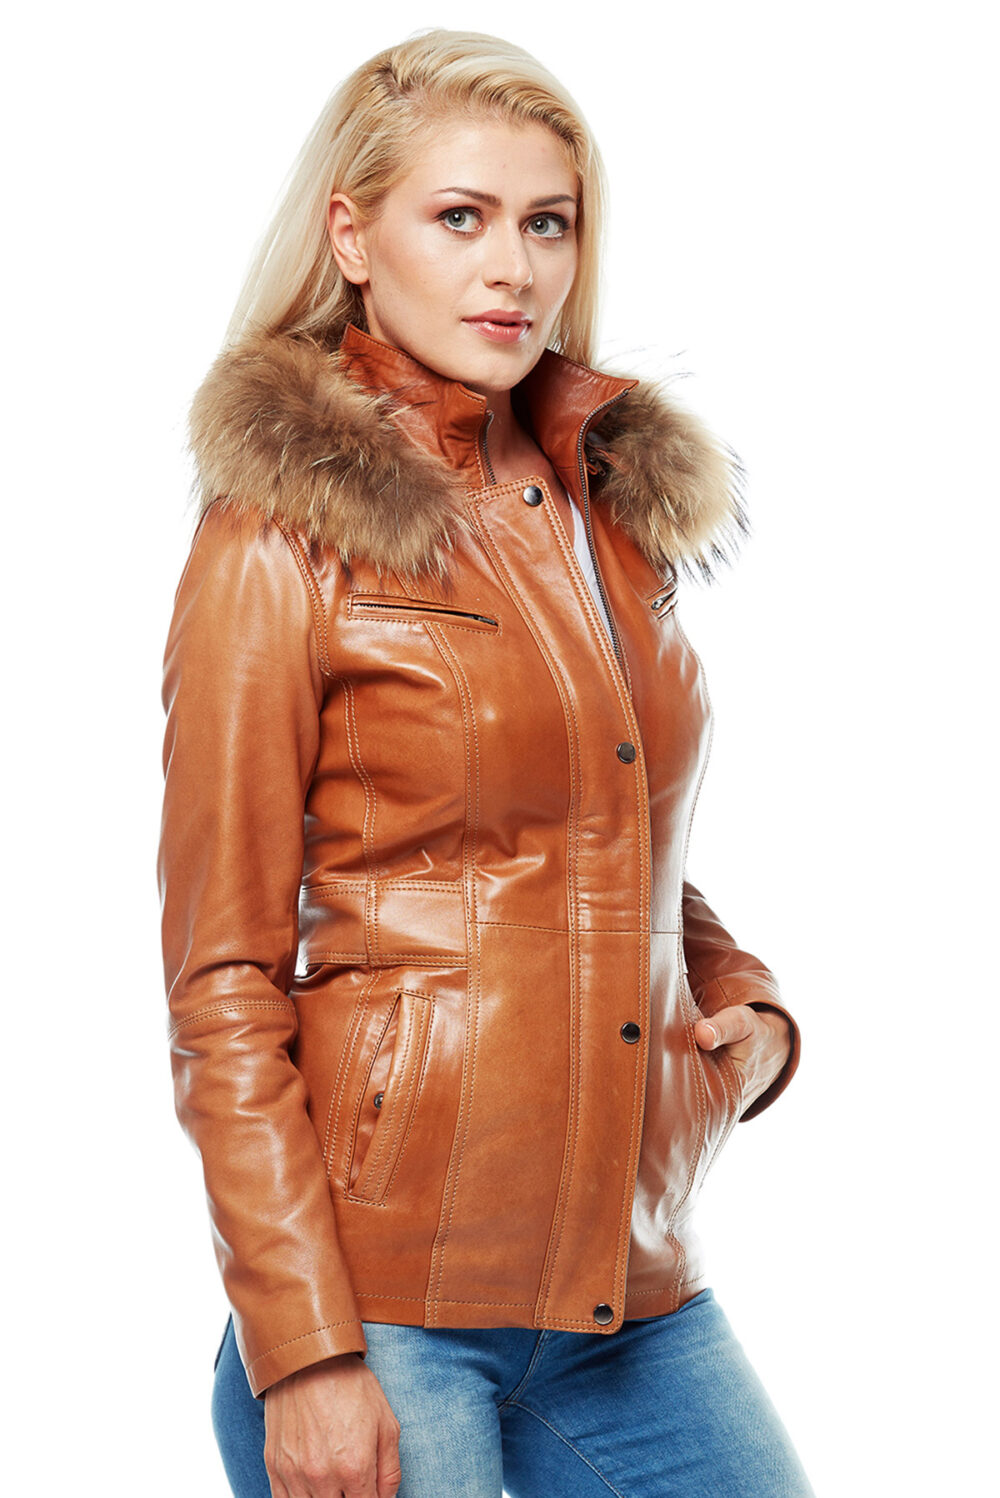 Pinar Tabacco Brown Hooded Leather Jacket